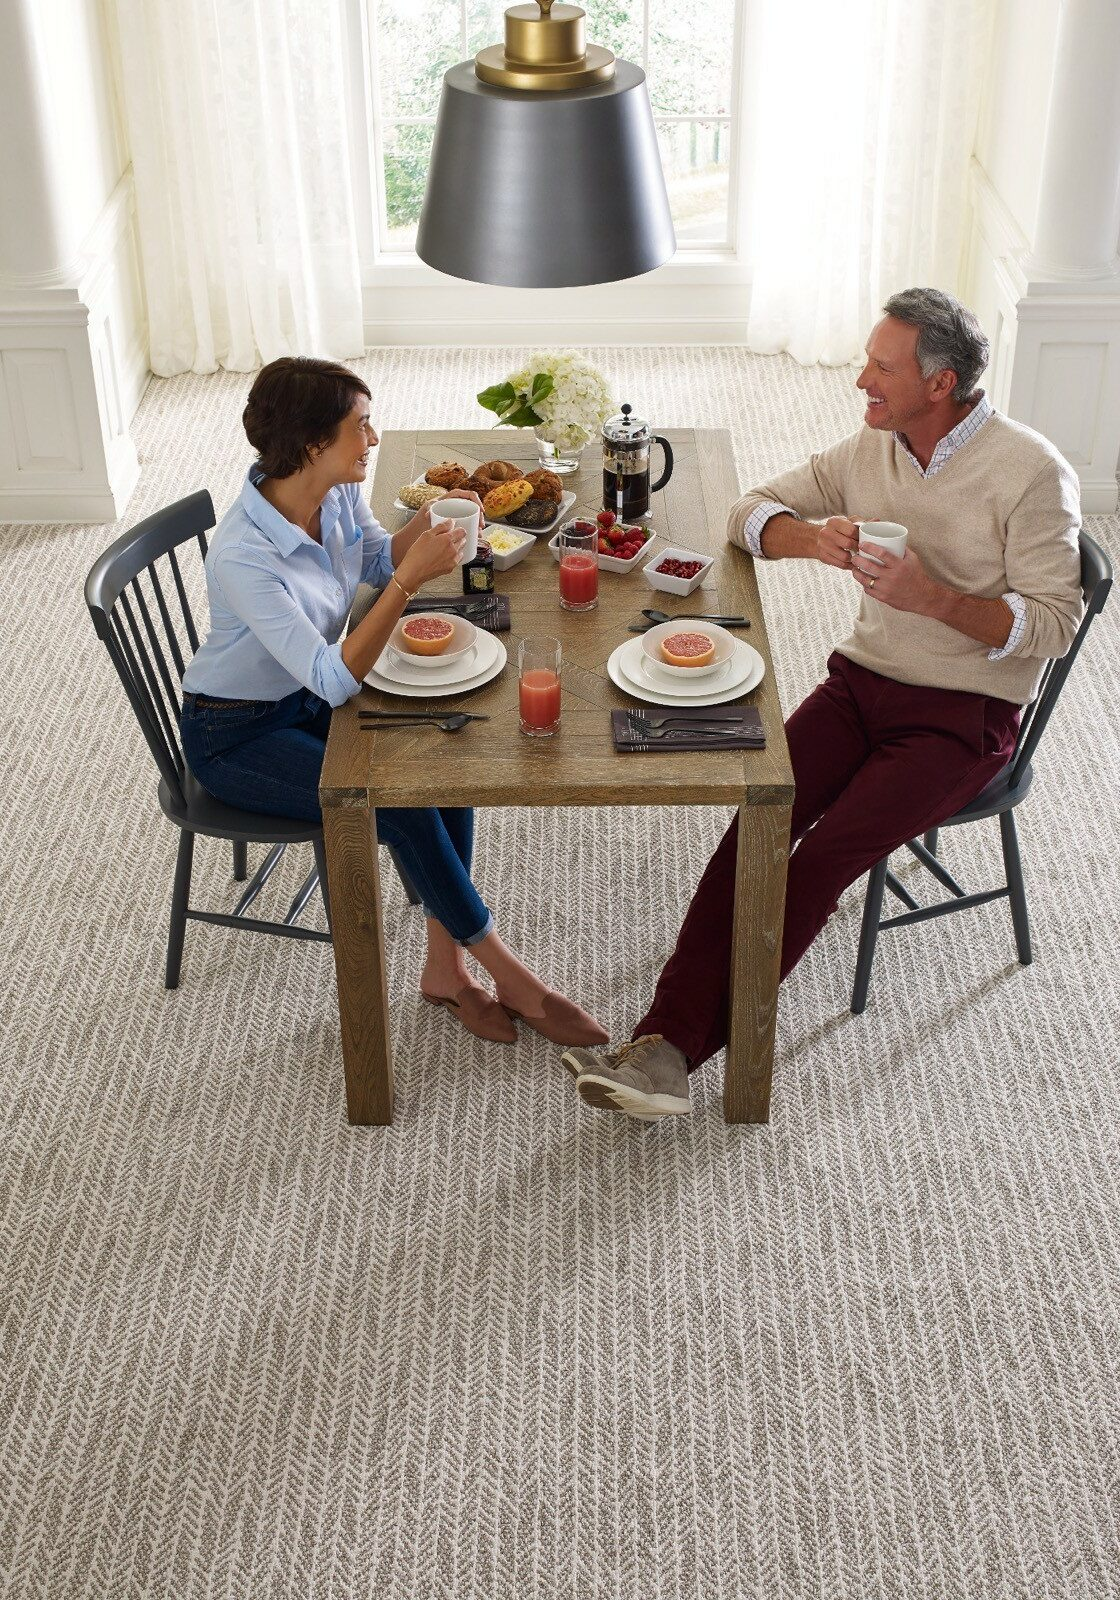 Carpeting | The Flooring Place